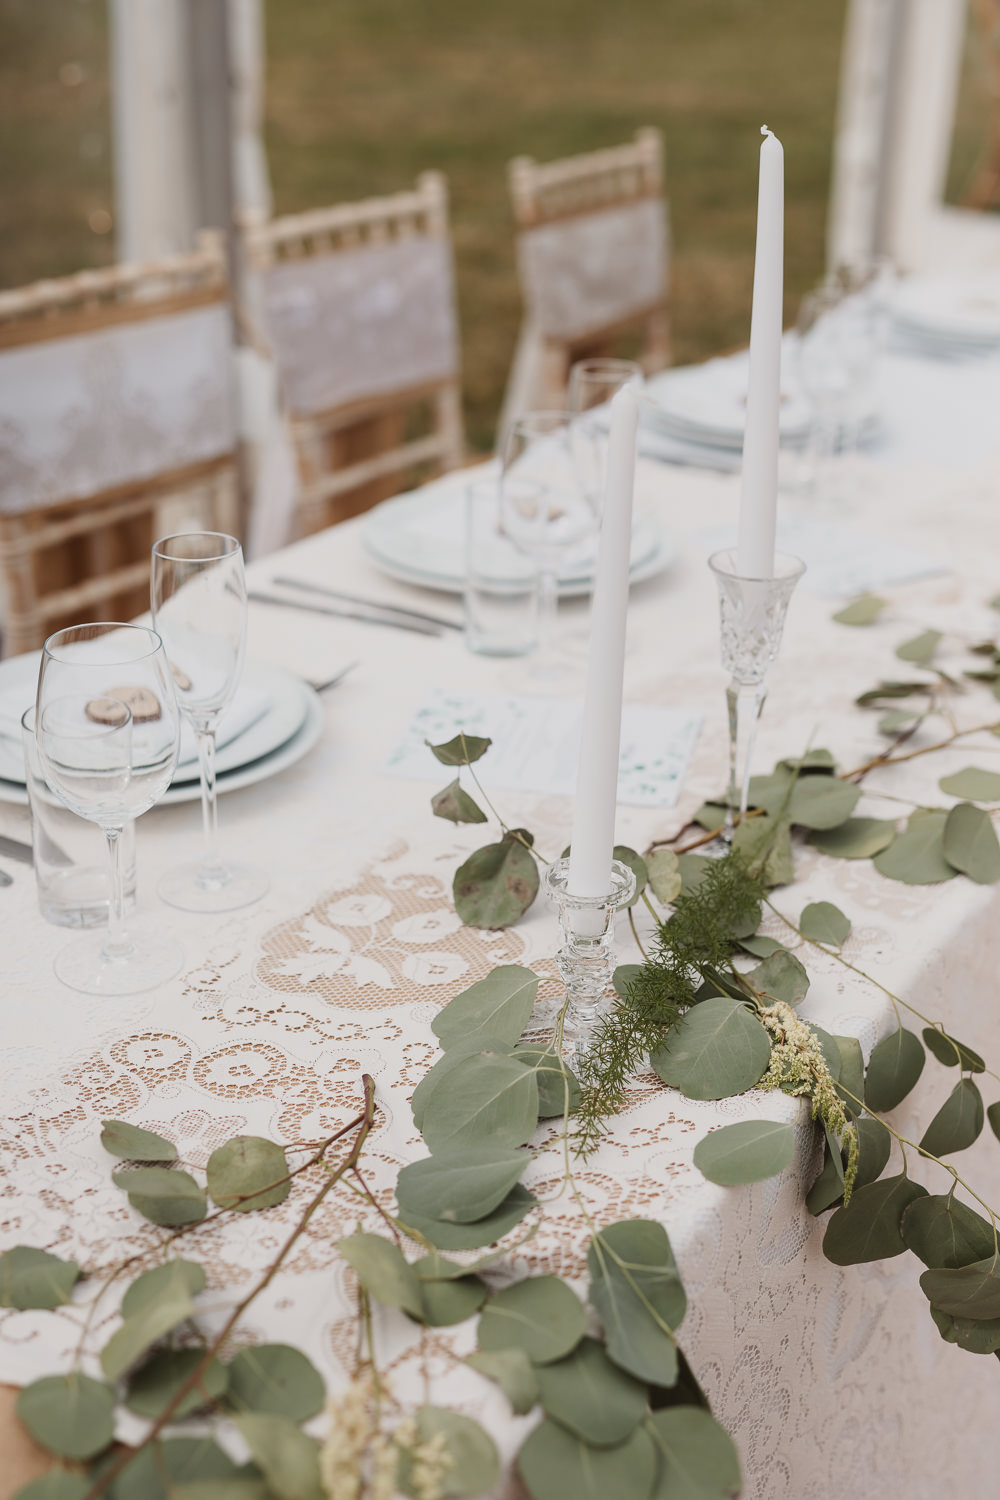 Candles Greenery Eucalyptus Decor Clear Marquee Wedding Sarah Brookes Photography